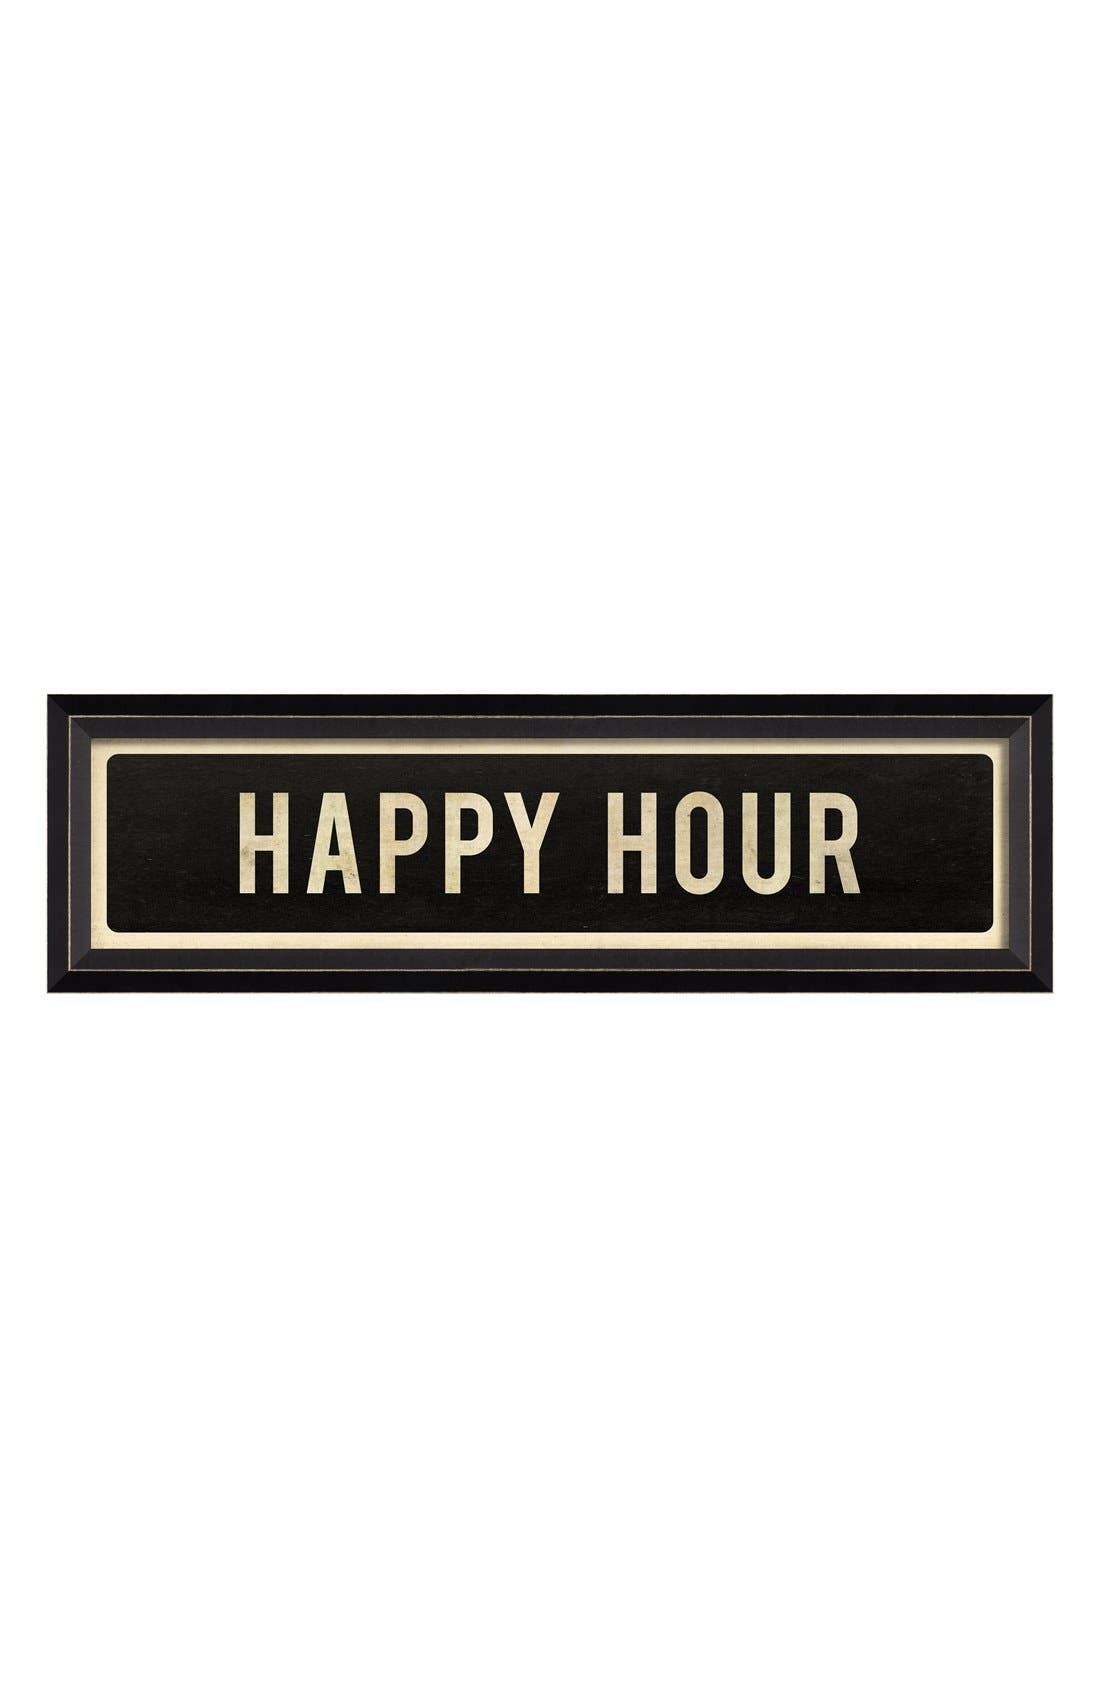 Alternate Image 1 Selected - Spicher and Company 'Happy Hour' Vintage Look Street Sign Artwork